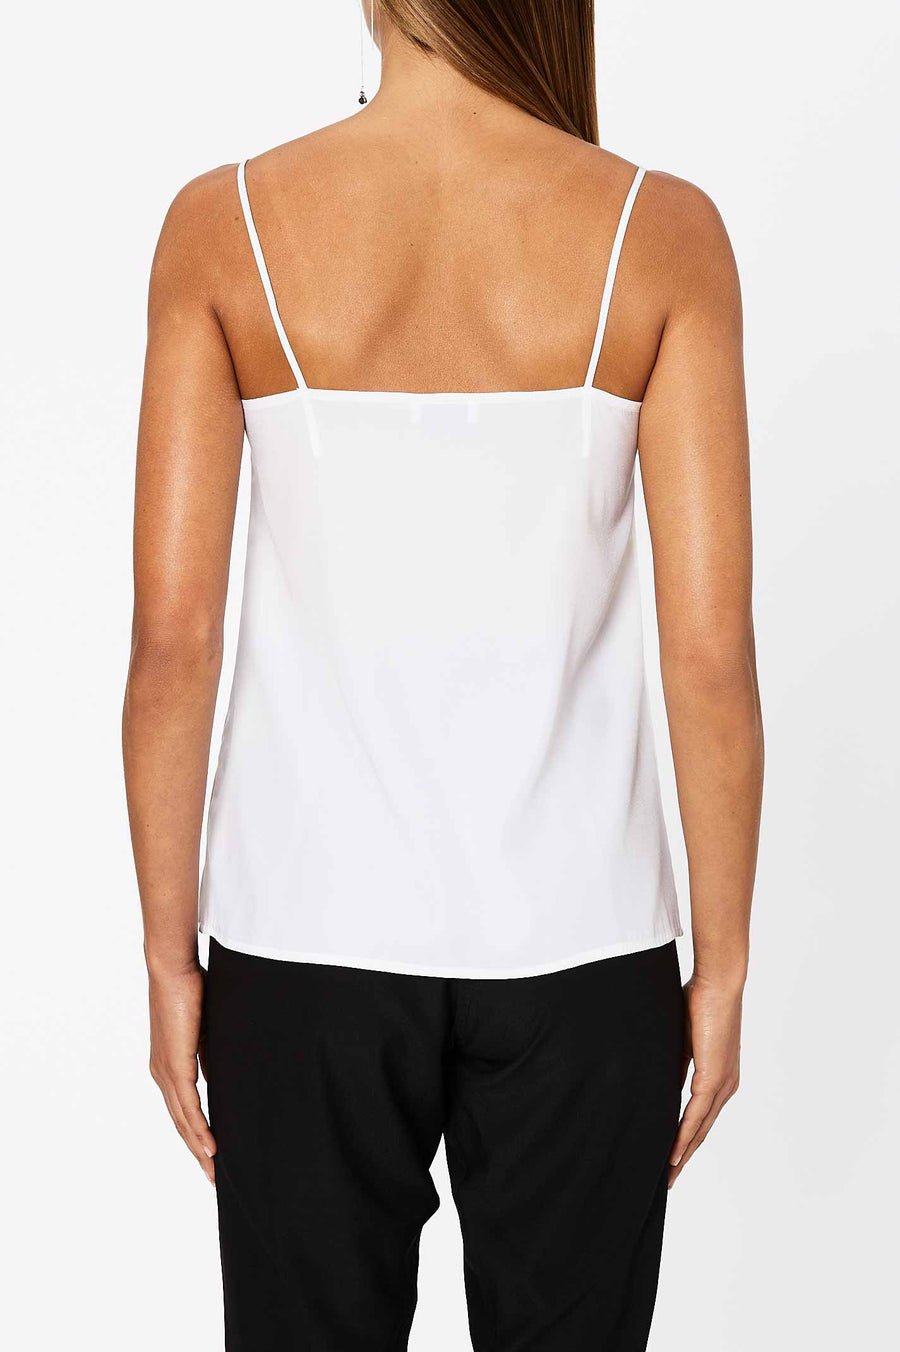 The Shoestring Camisole has a loose fit and features a v-neckline and shoestring shoulder straps